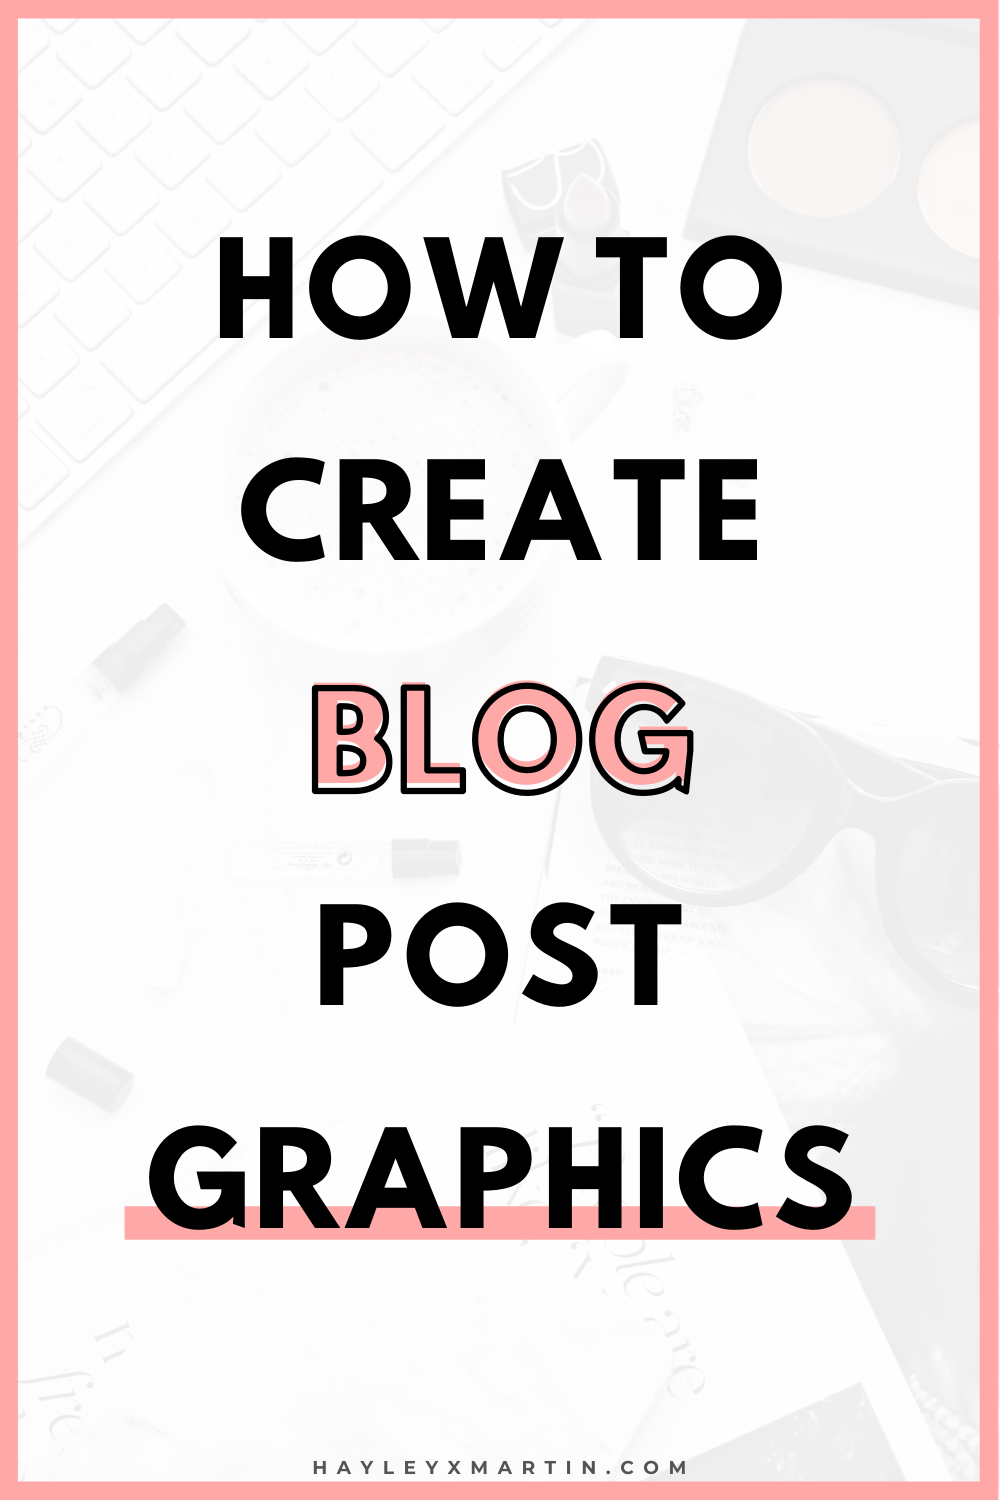 HOW TO CREATE BLOG POST GRAPHICS | HAYLEYXMARTIN